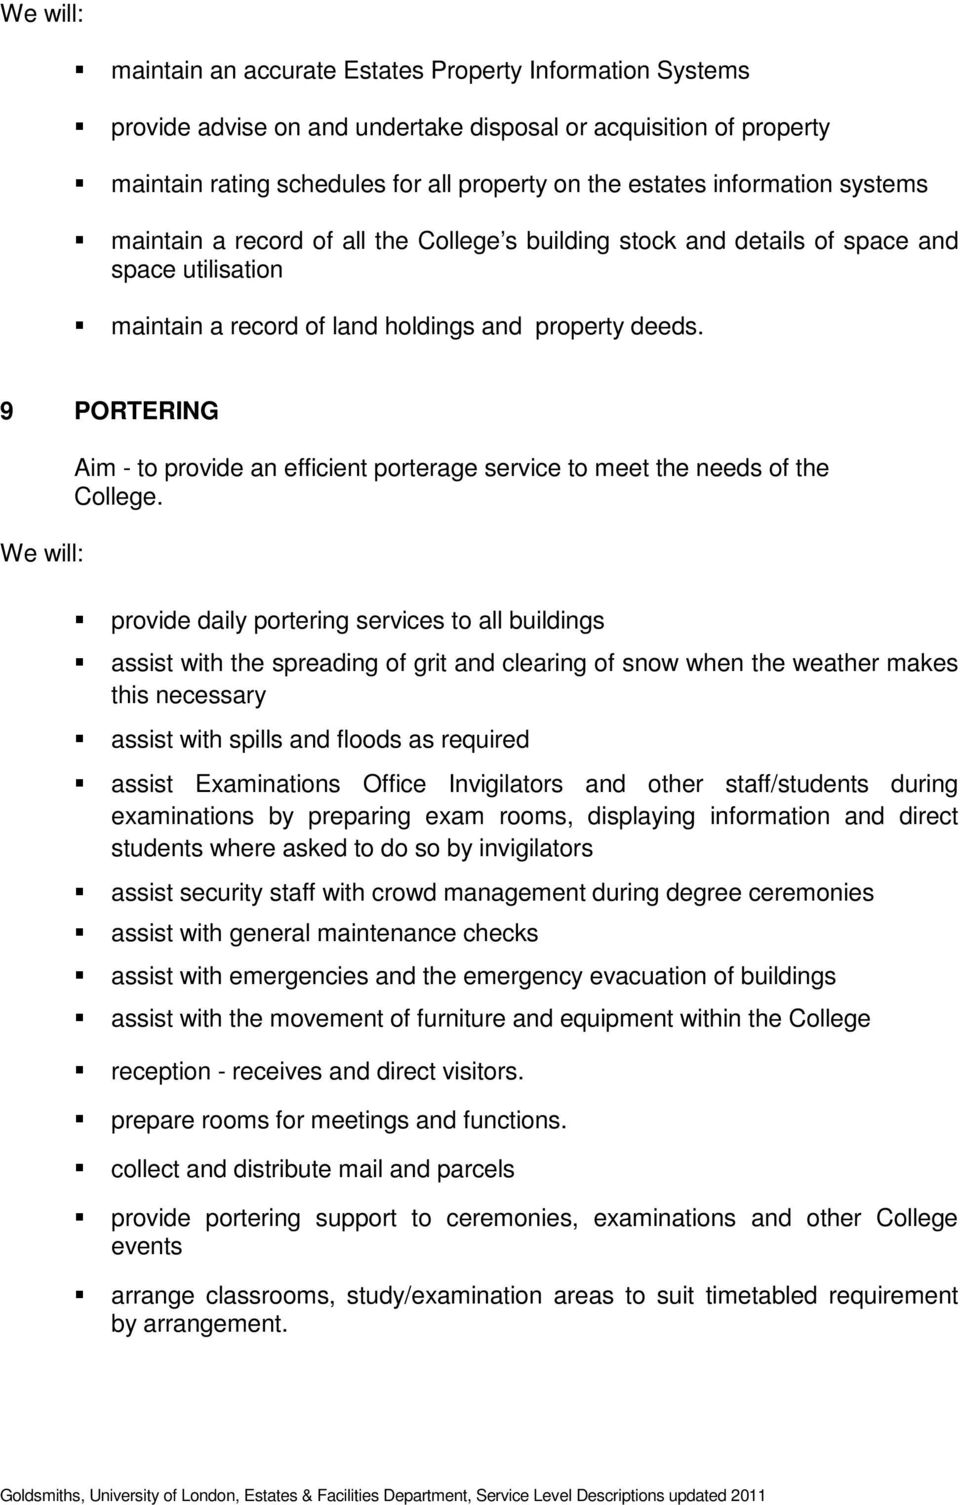 9 PORTERING Aim - to provide an efficient porterage service to meet the needs of the College.